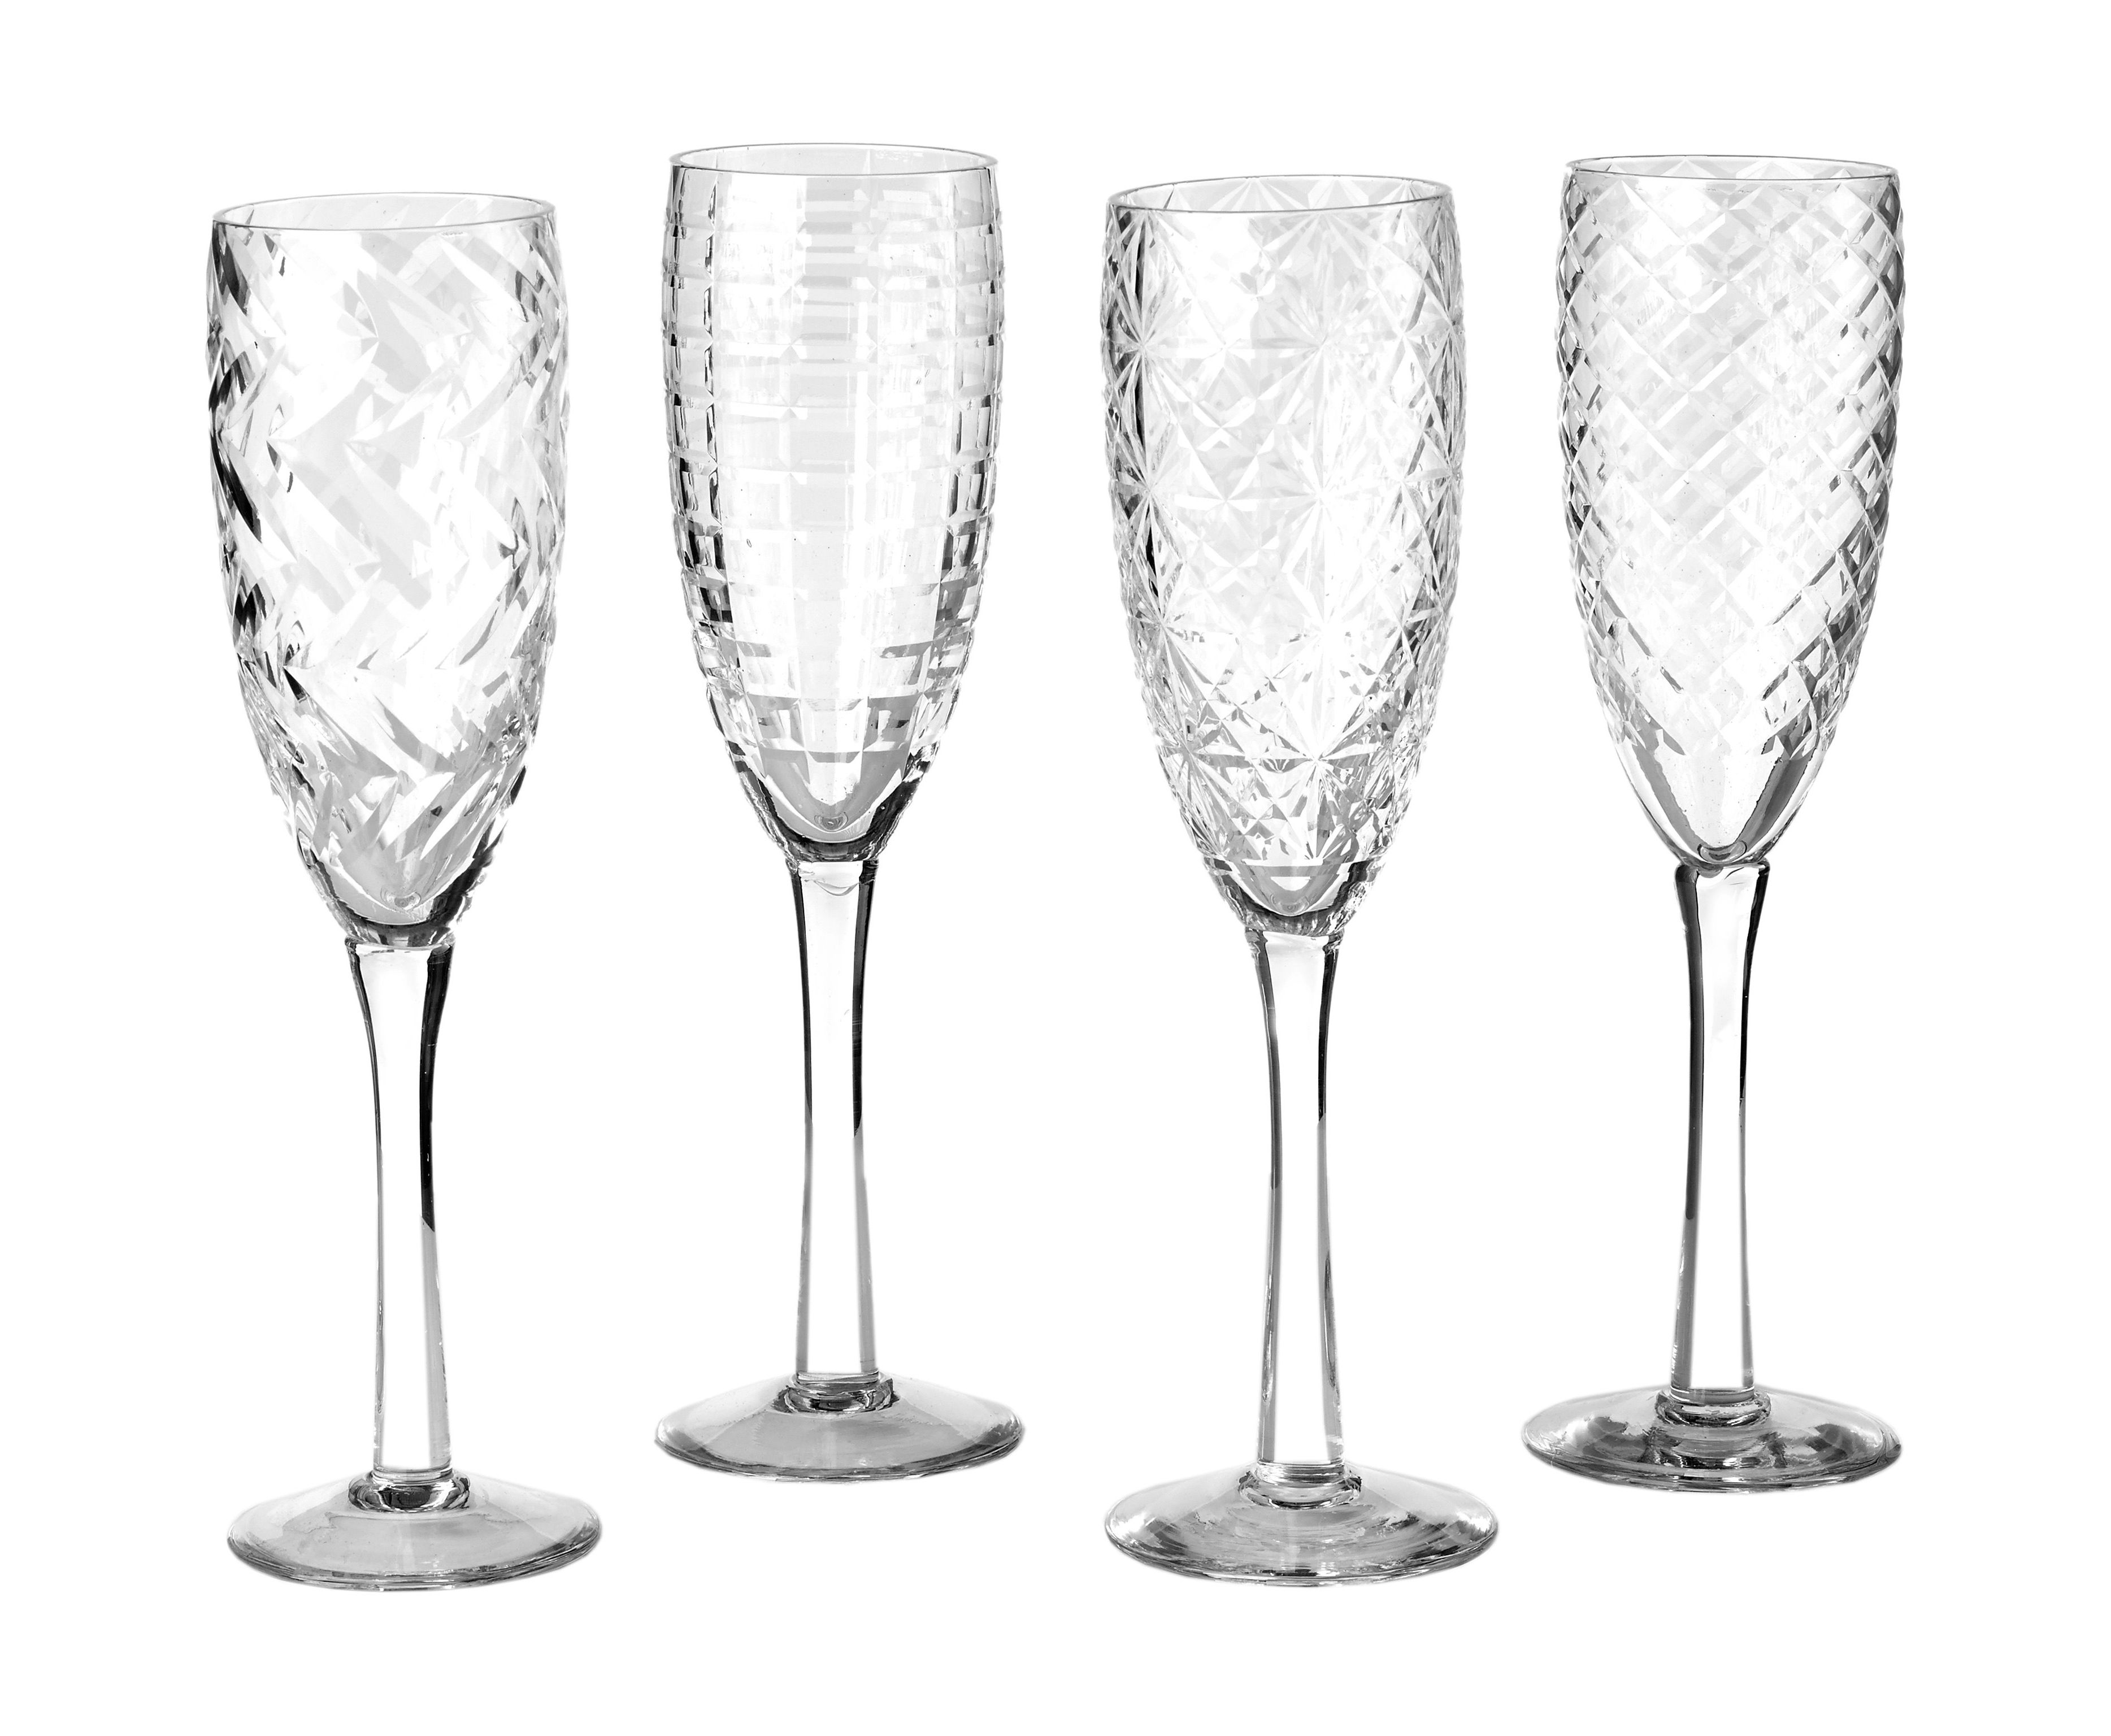 Tableware - Wine Glasses & Glassware - Cuttings Champagne glass - Set of 4 by Pols Potten - Transparent - Engraved glass